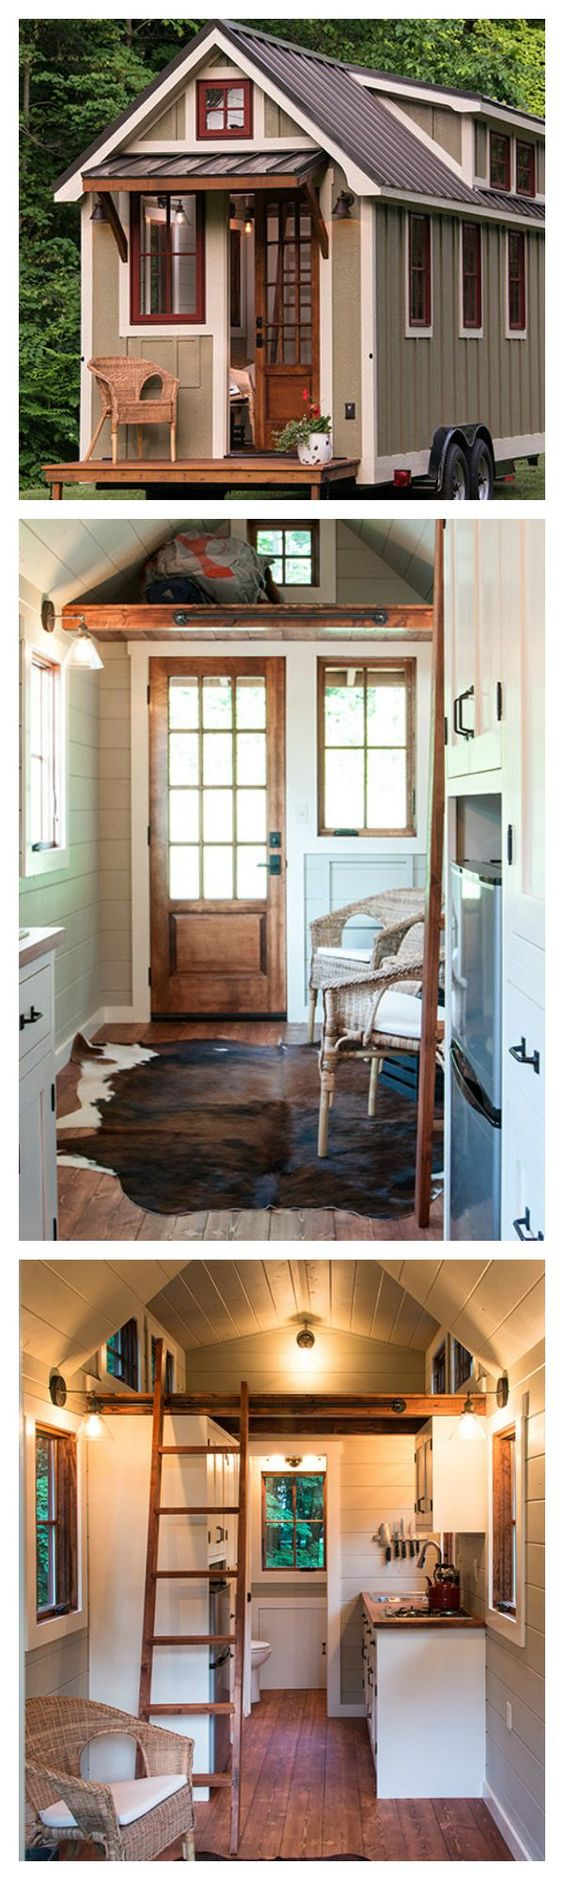 It you're thinking about downsizing and trying the tiny house movement, this tiny 150 cottage that's completely towable is perfect for you. Its interior is full of rustic charm that will make you feel like you're in a farm house.